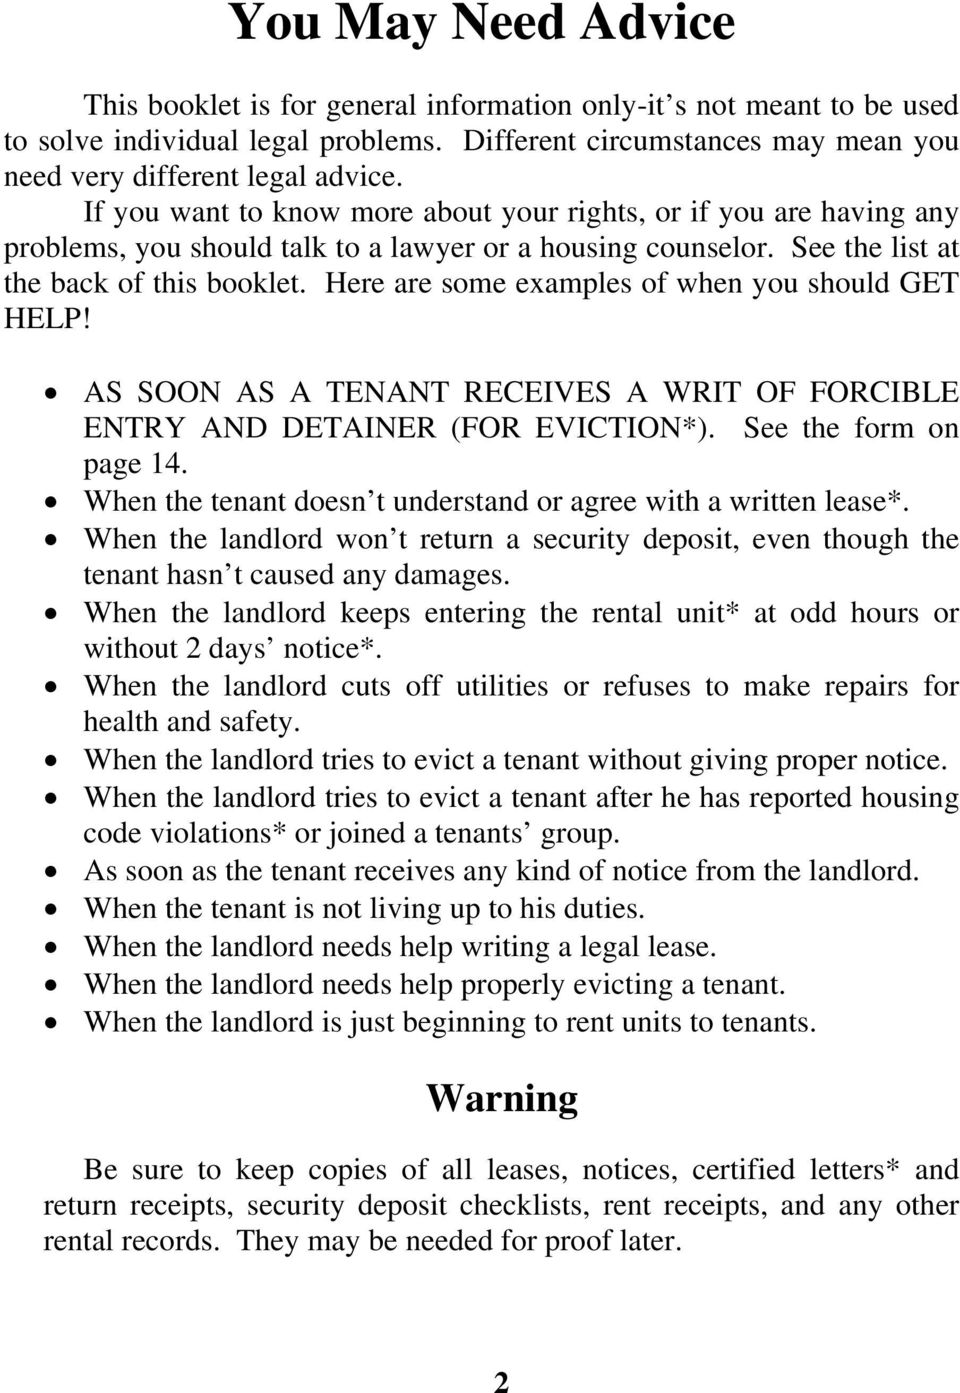 Here are some examples of when you should GET HELP! AS SOON AS A TENANT RECEIVES A WRIT OF FORCIBLE ENTRY AND DETAINER (FOR EVICTION*). See the form on page 14.